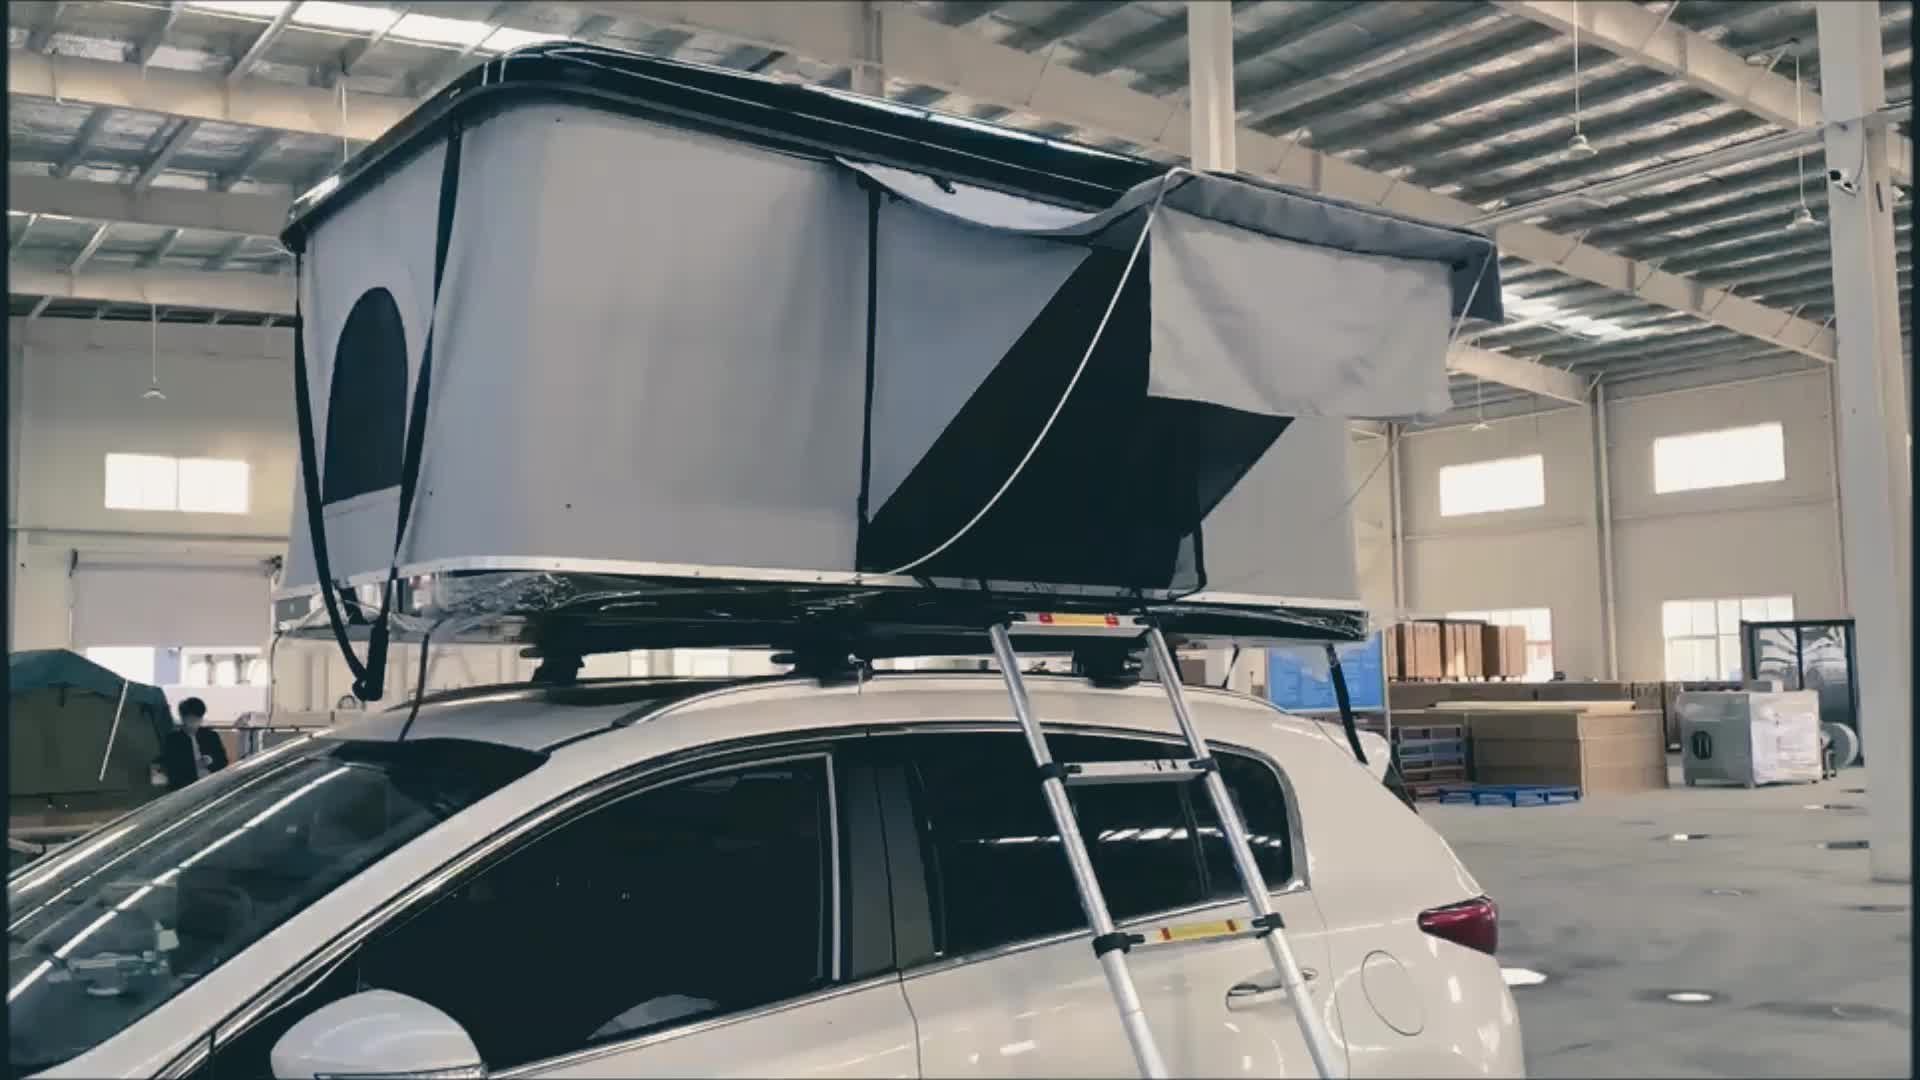 2020 New  Car Roof Rack Hard Shell Roof Top Tent (210*140cm)